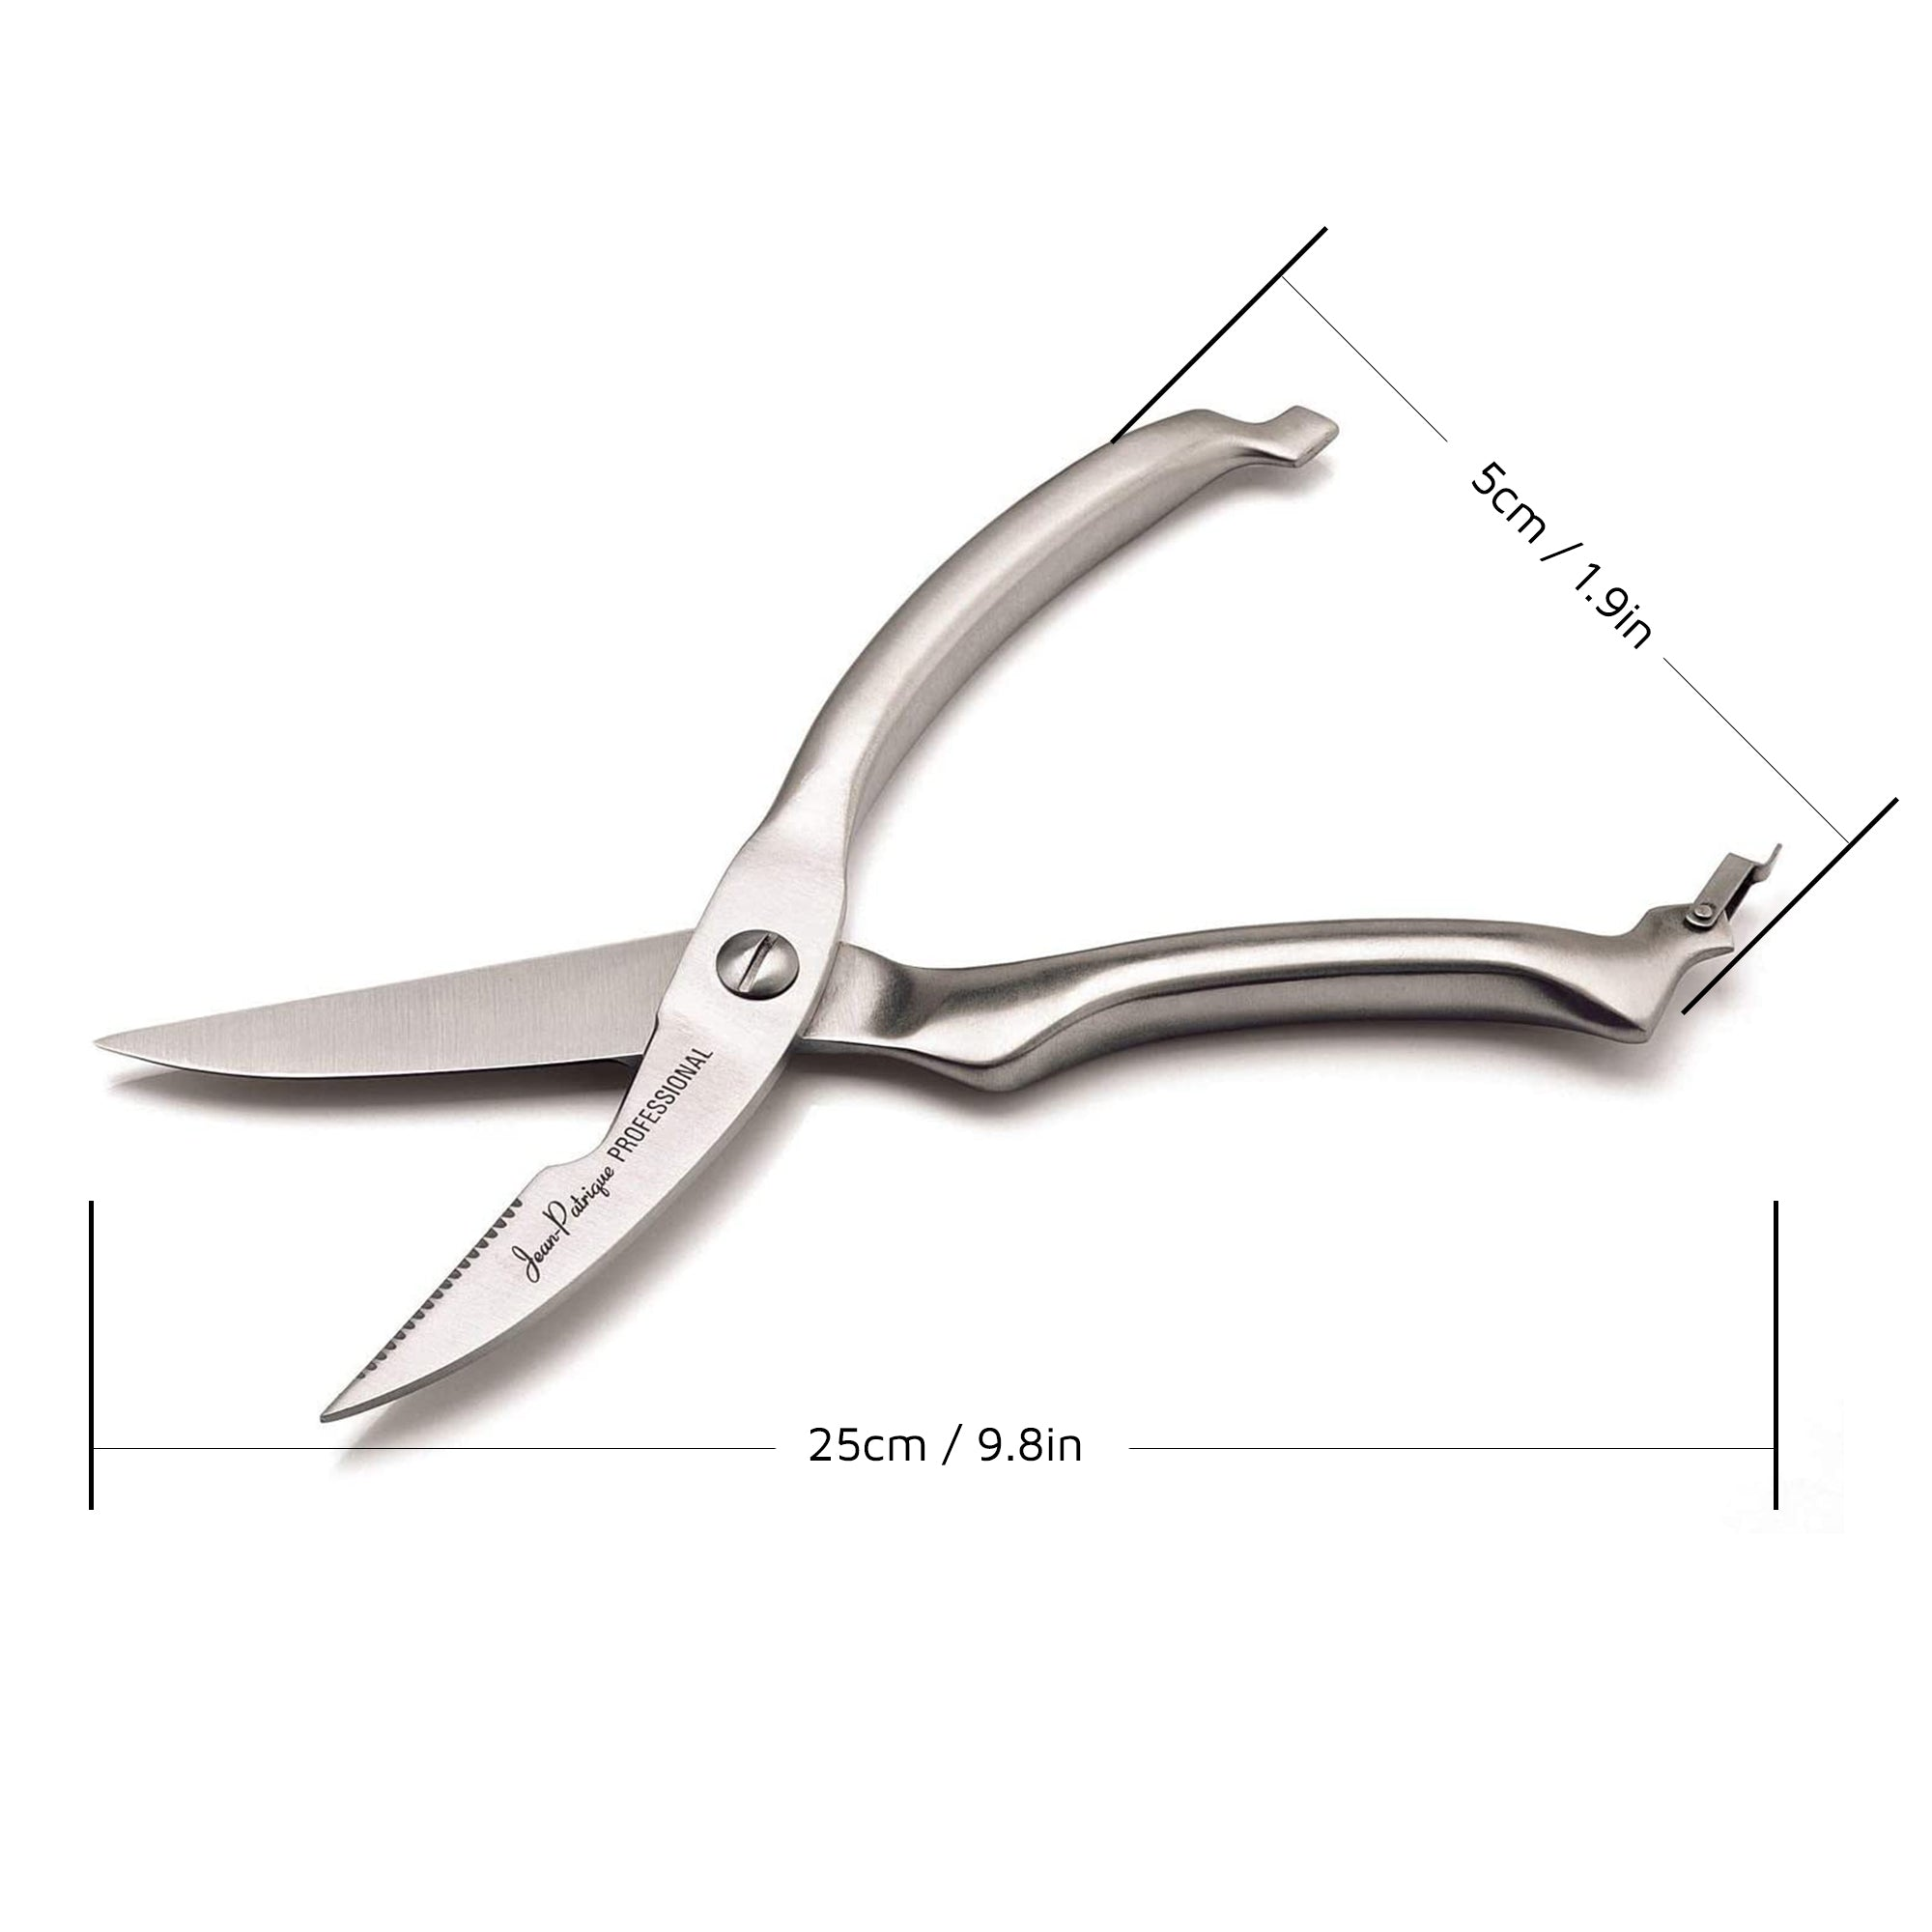 Chopaholic Professional Poultry Shears